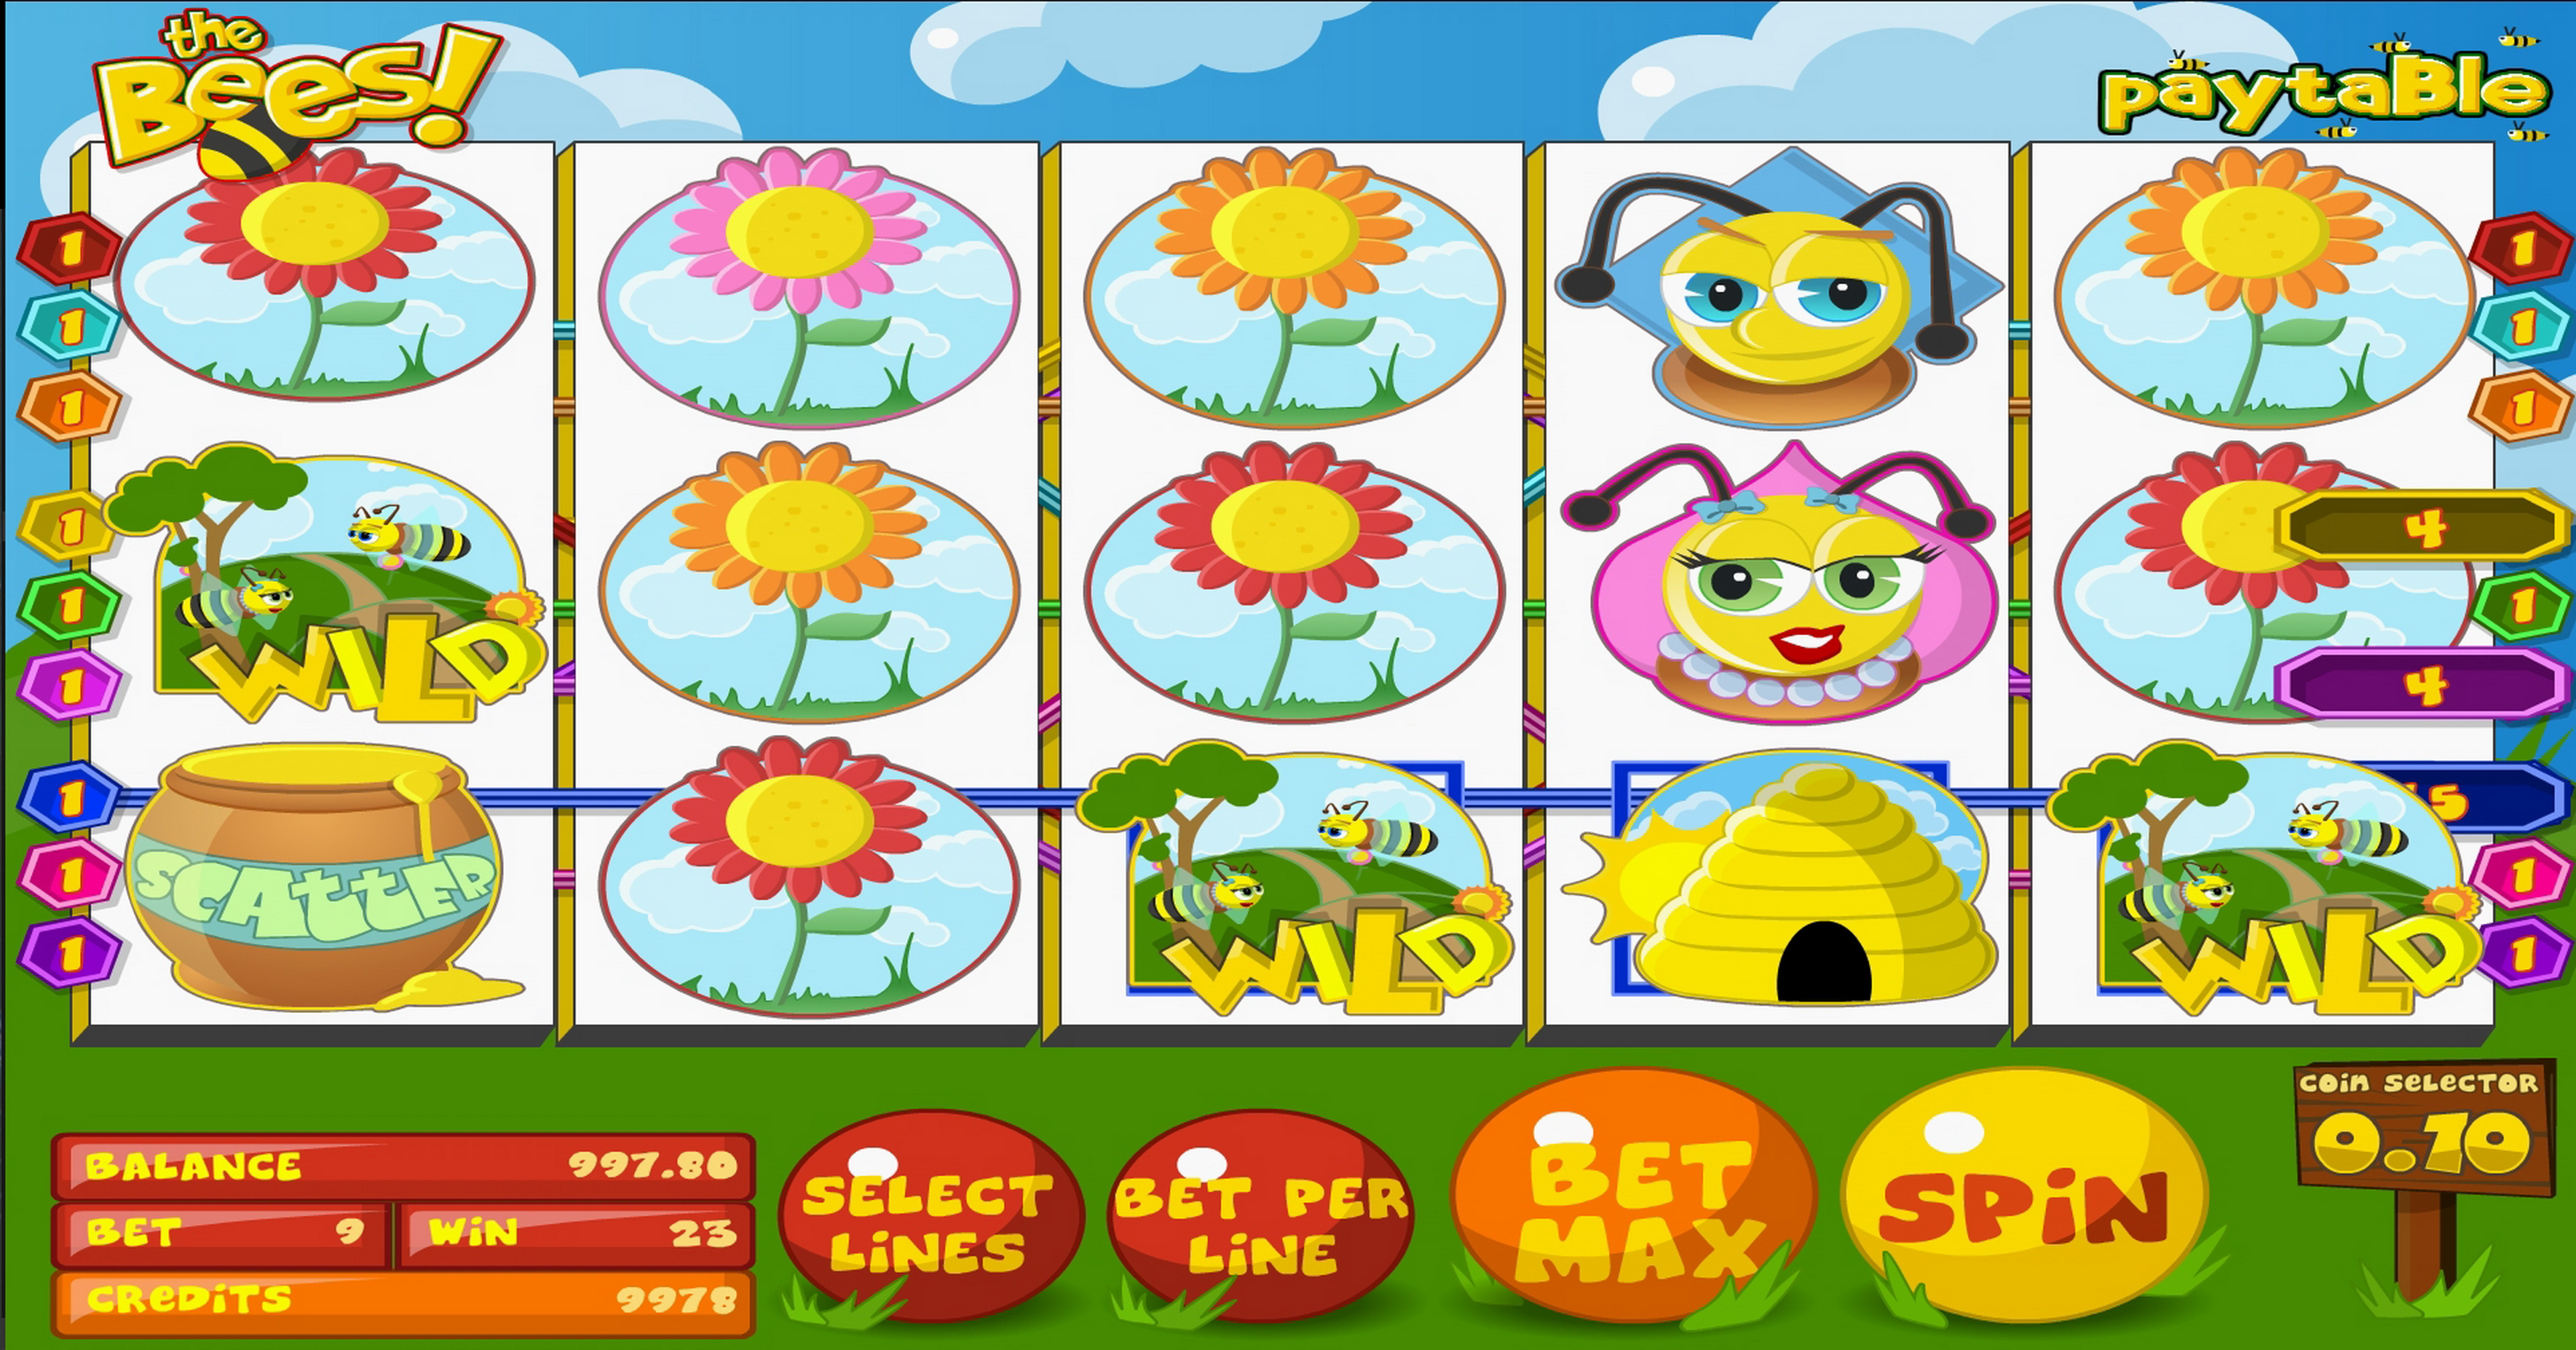 Win Money in The Bees Free Slot Game by Betsoft